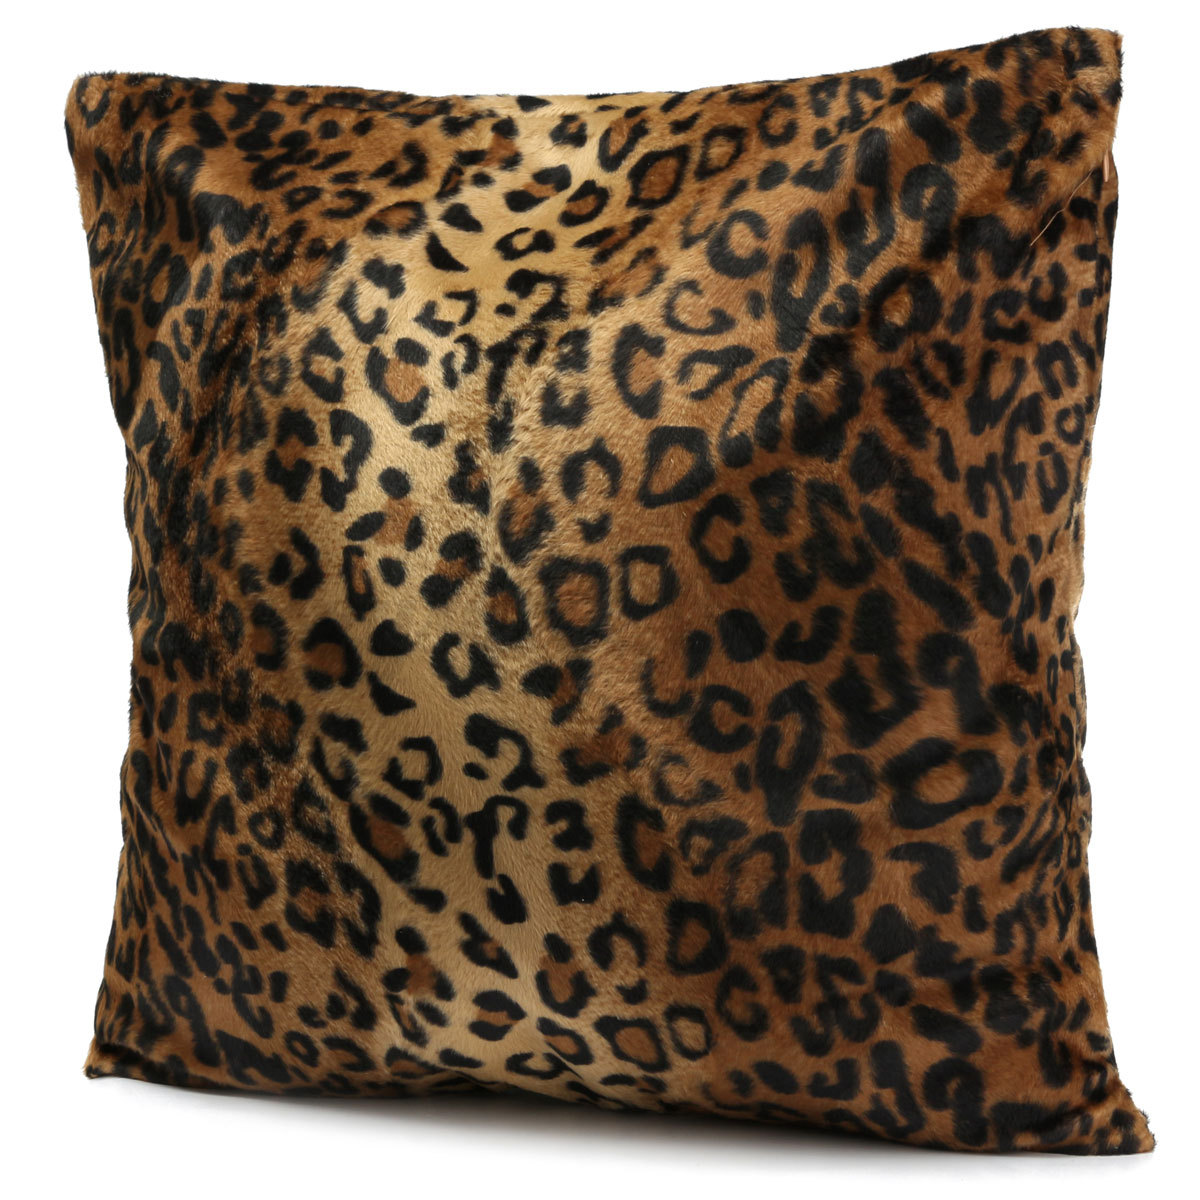 Animal Zebra Leopard Print Pillow Case Sofa Waist Throw Cushion Cover Home Decor